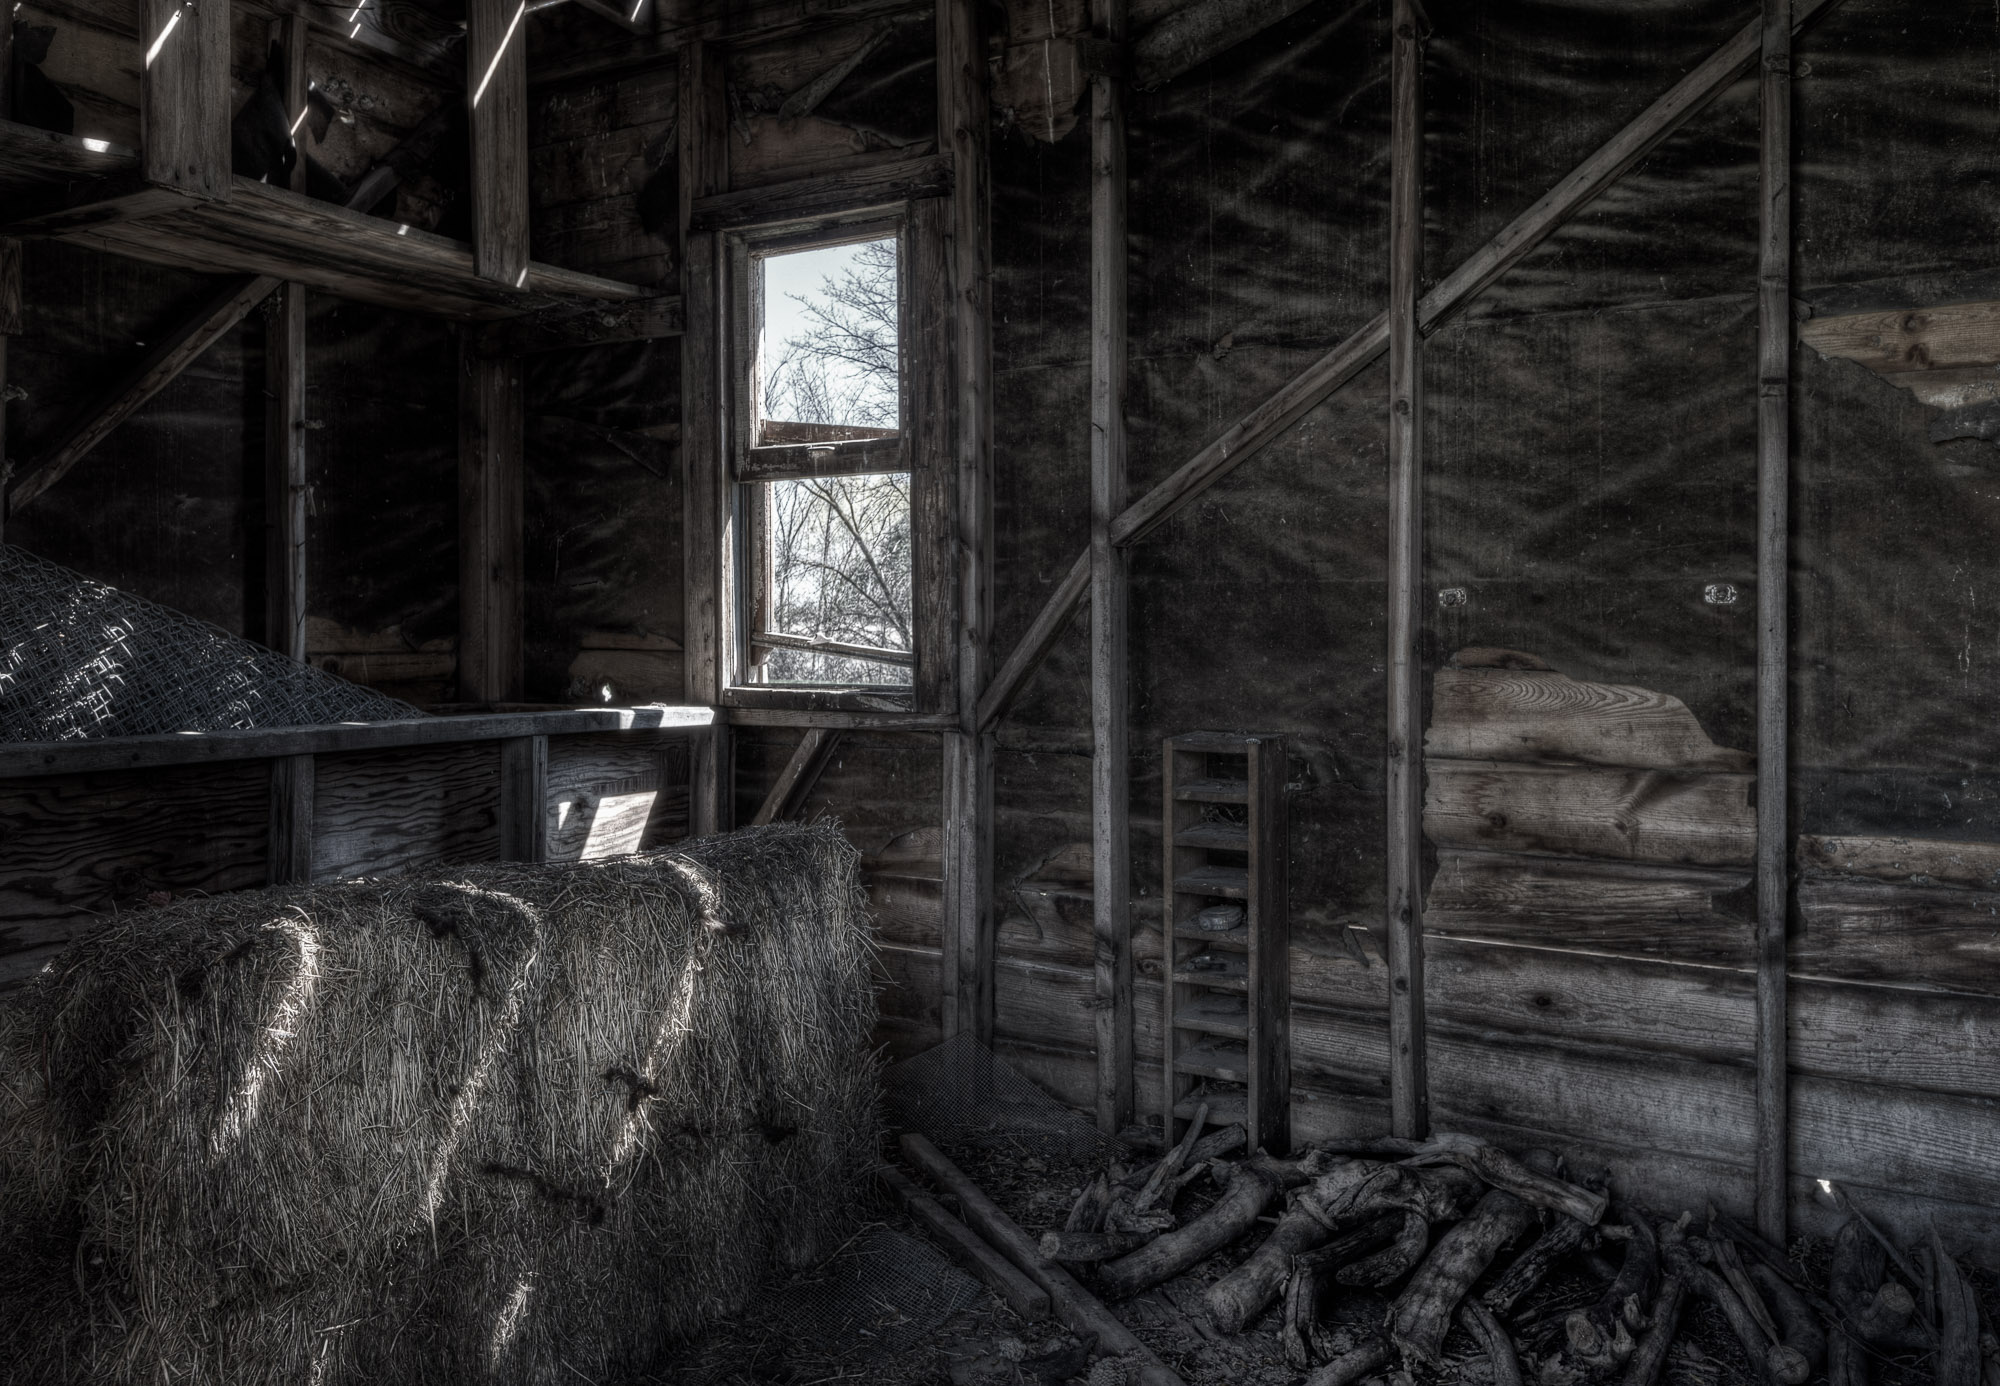 inside an old shed